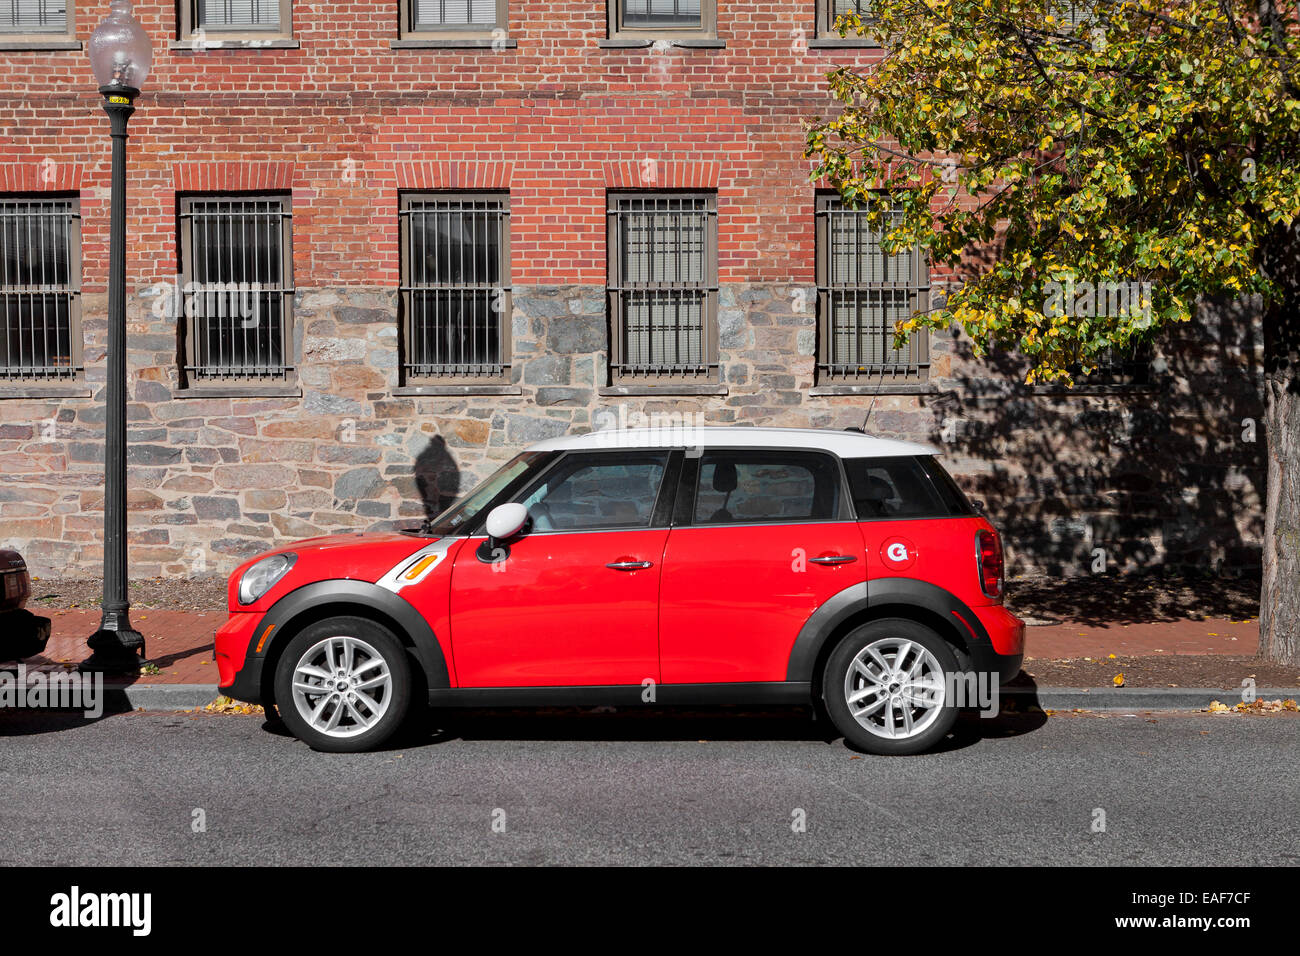 Mini Cooper Usa >> Mini Cooper Paceman 4 Door Parked Usa Stock Photo 75323151 Alamy